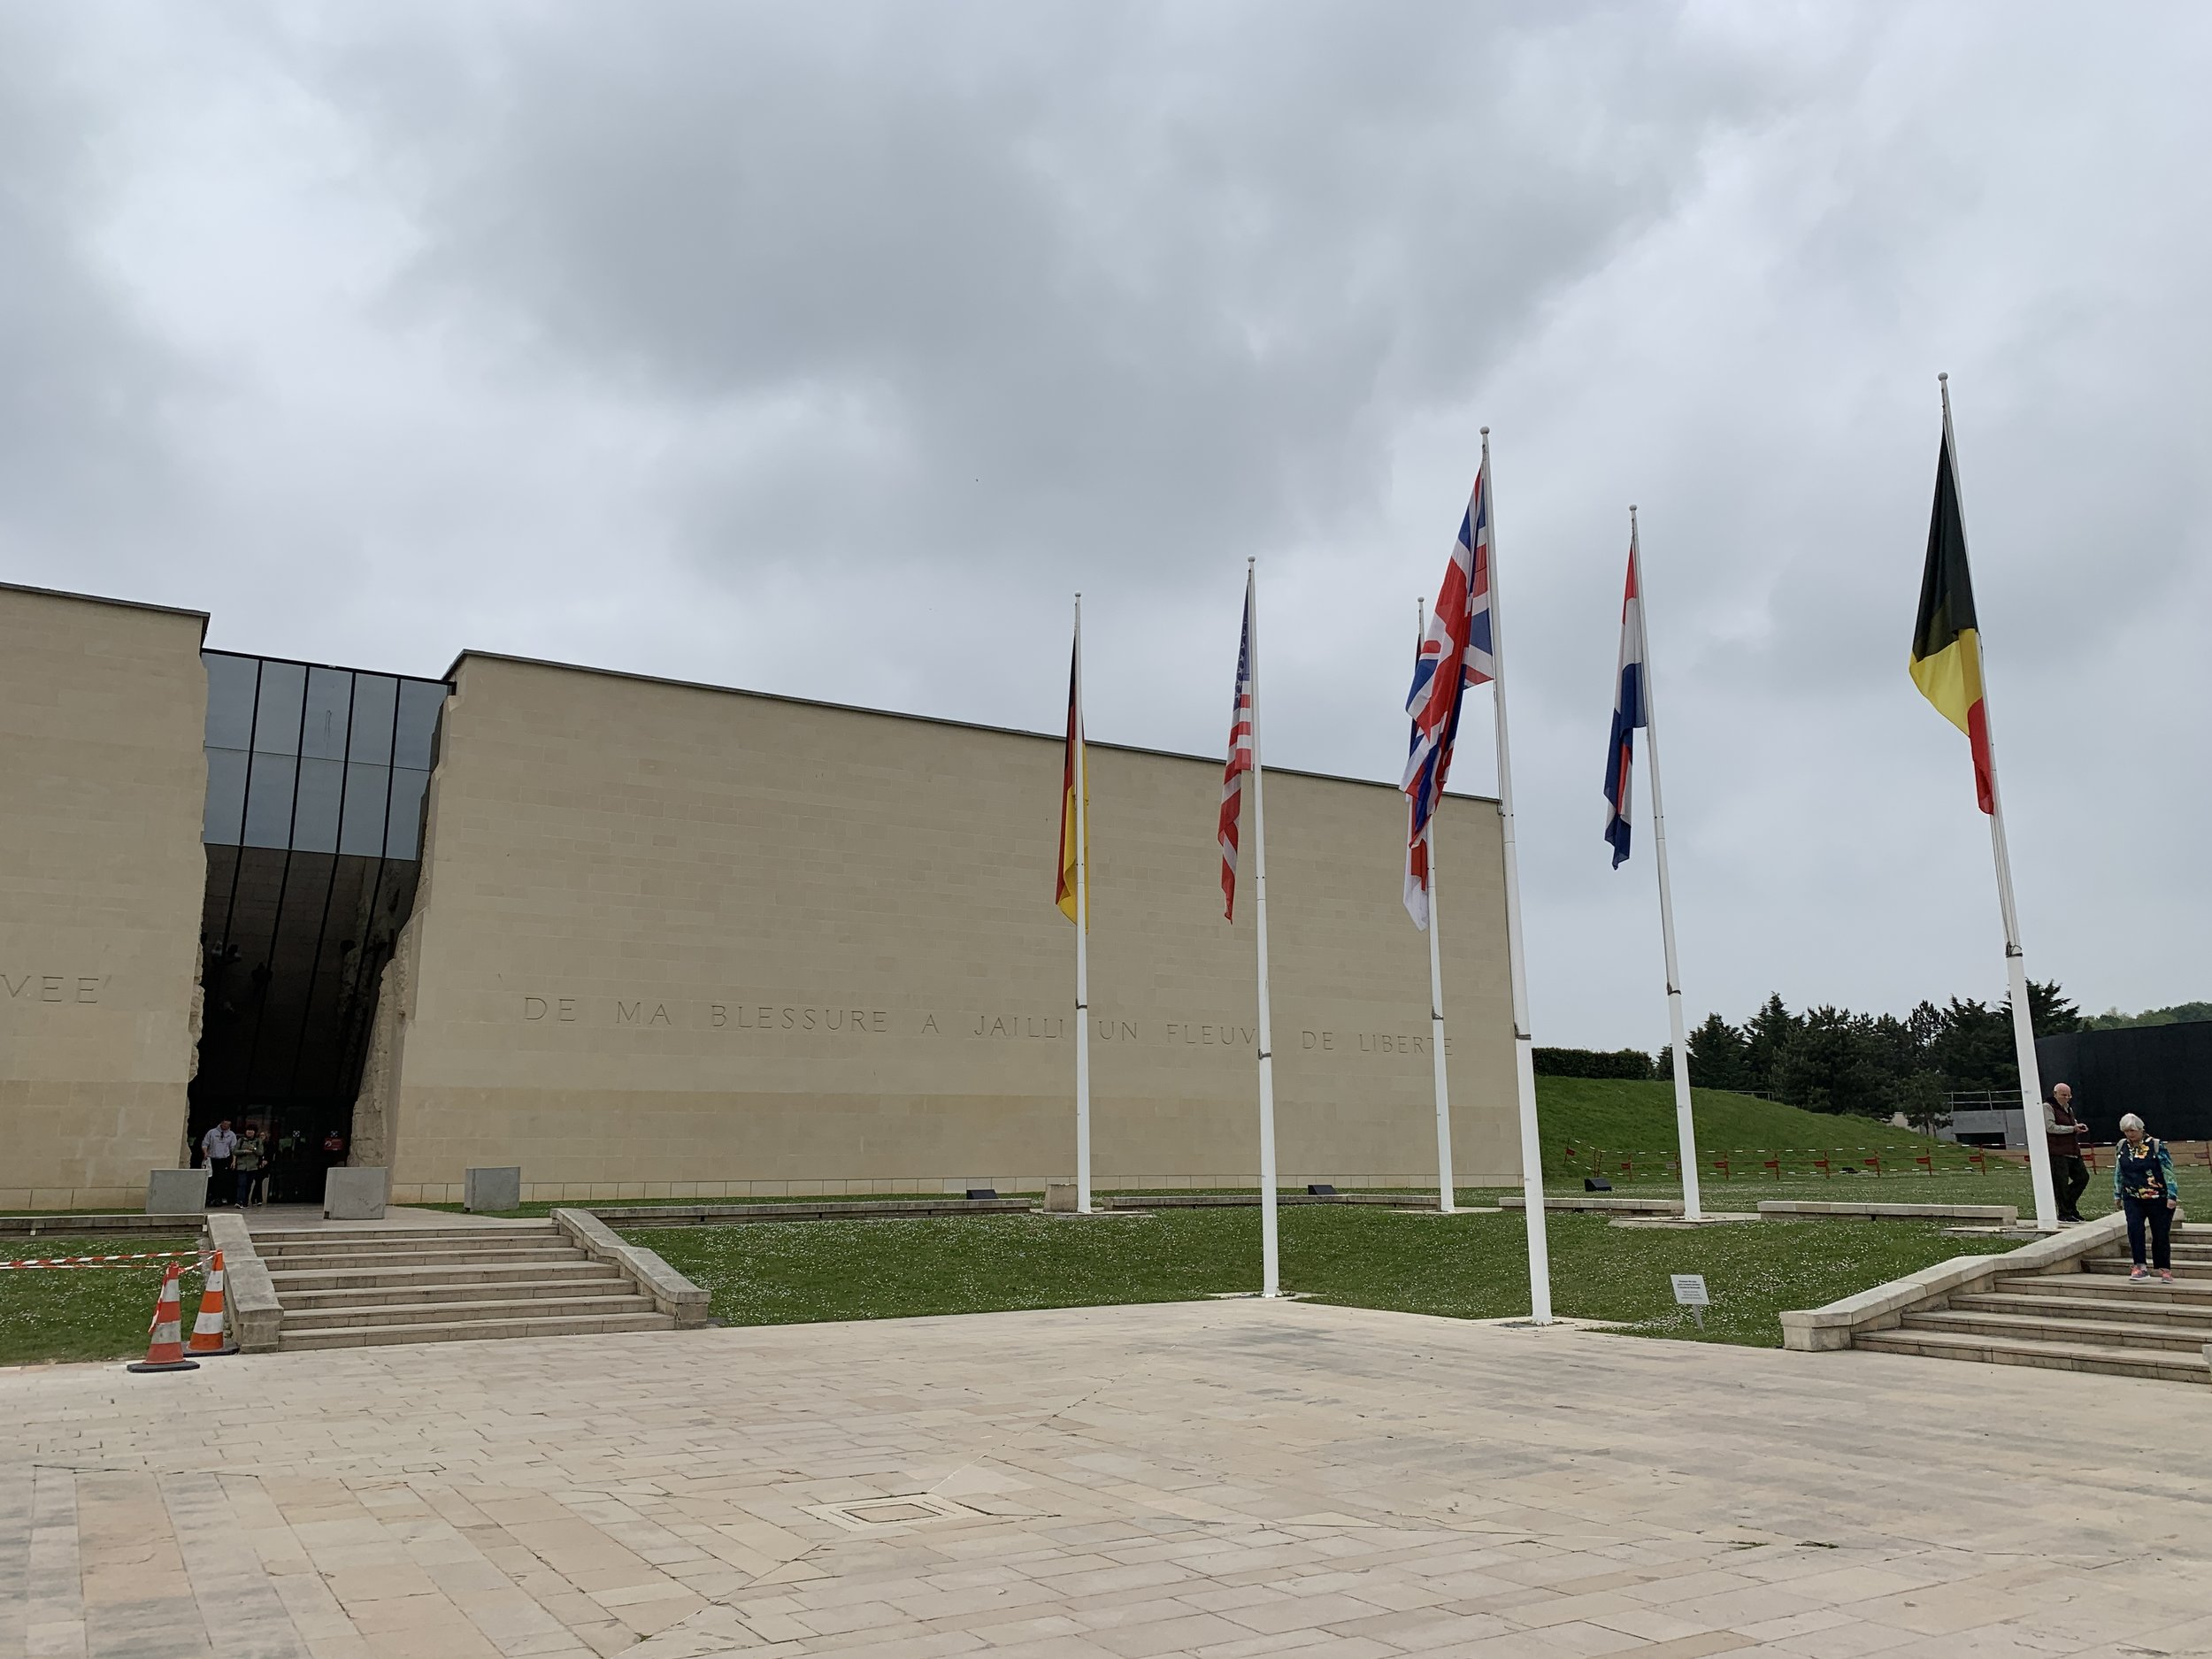 The flags outside represent the countries involved.